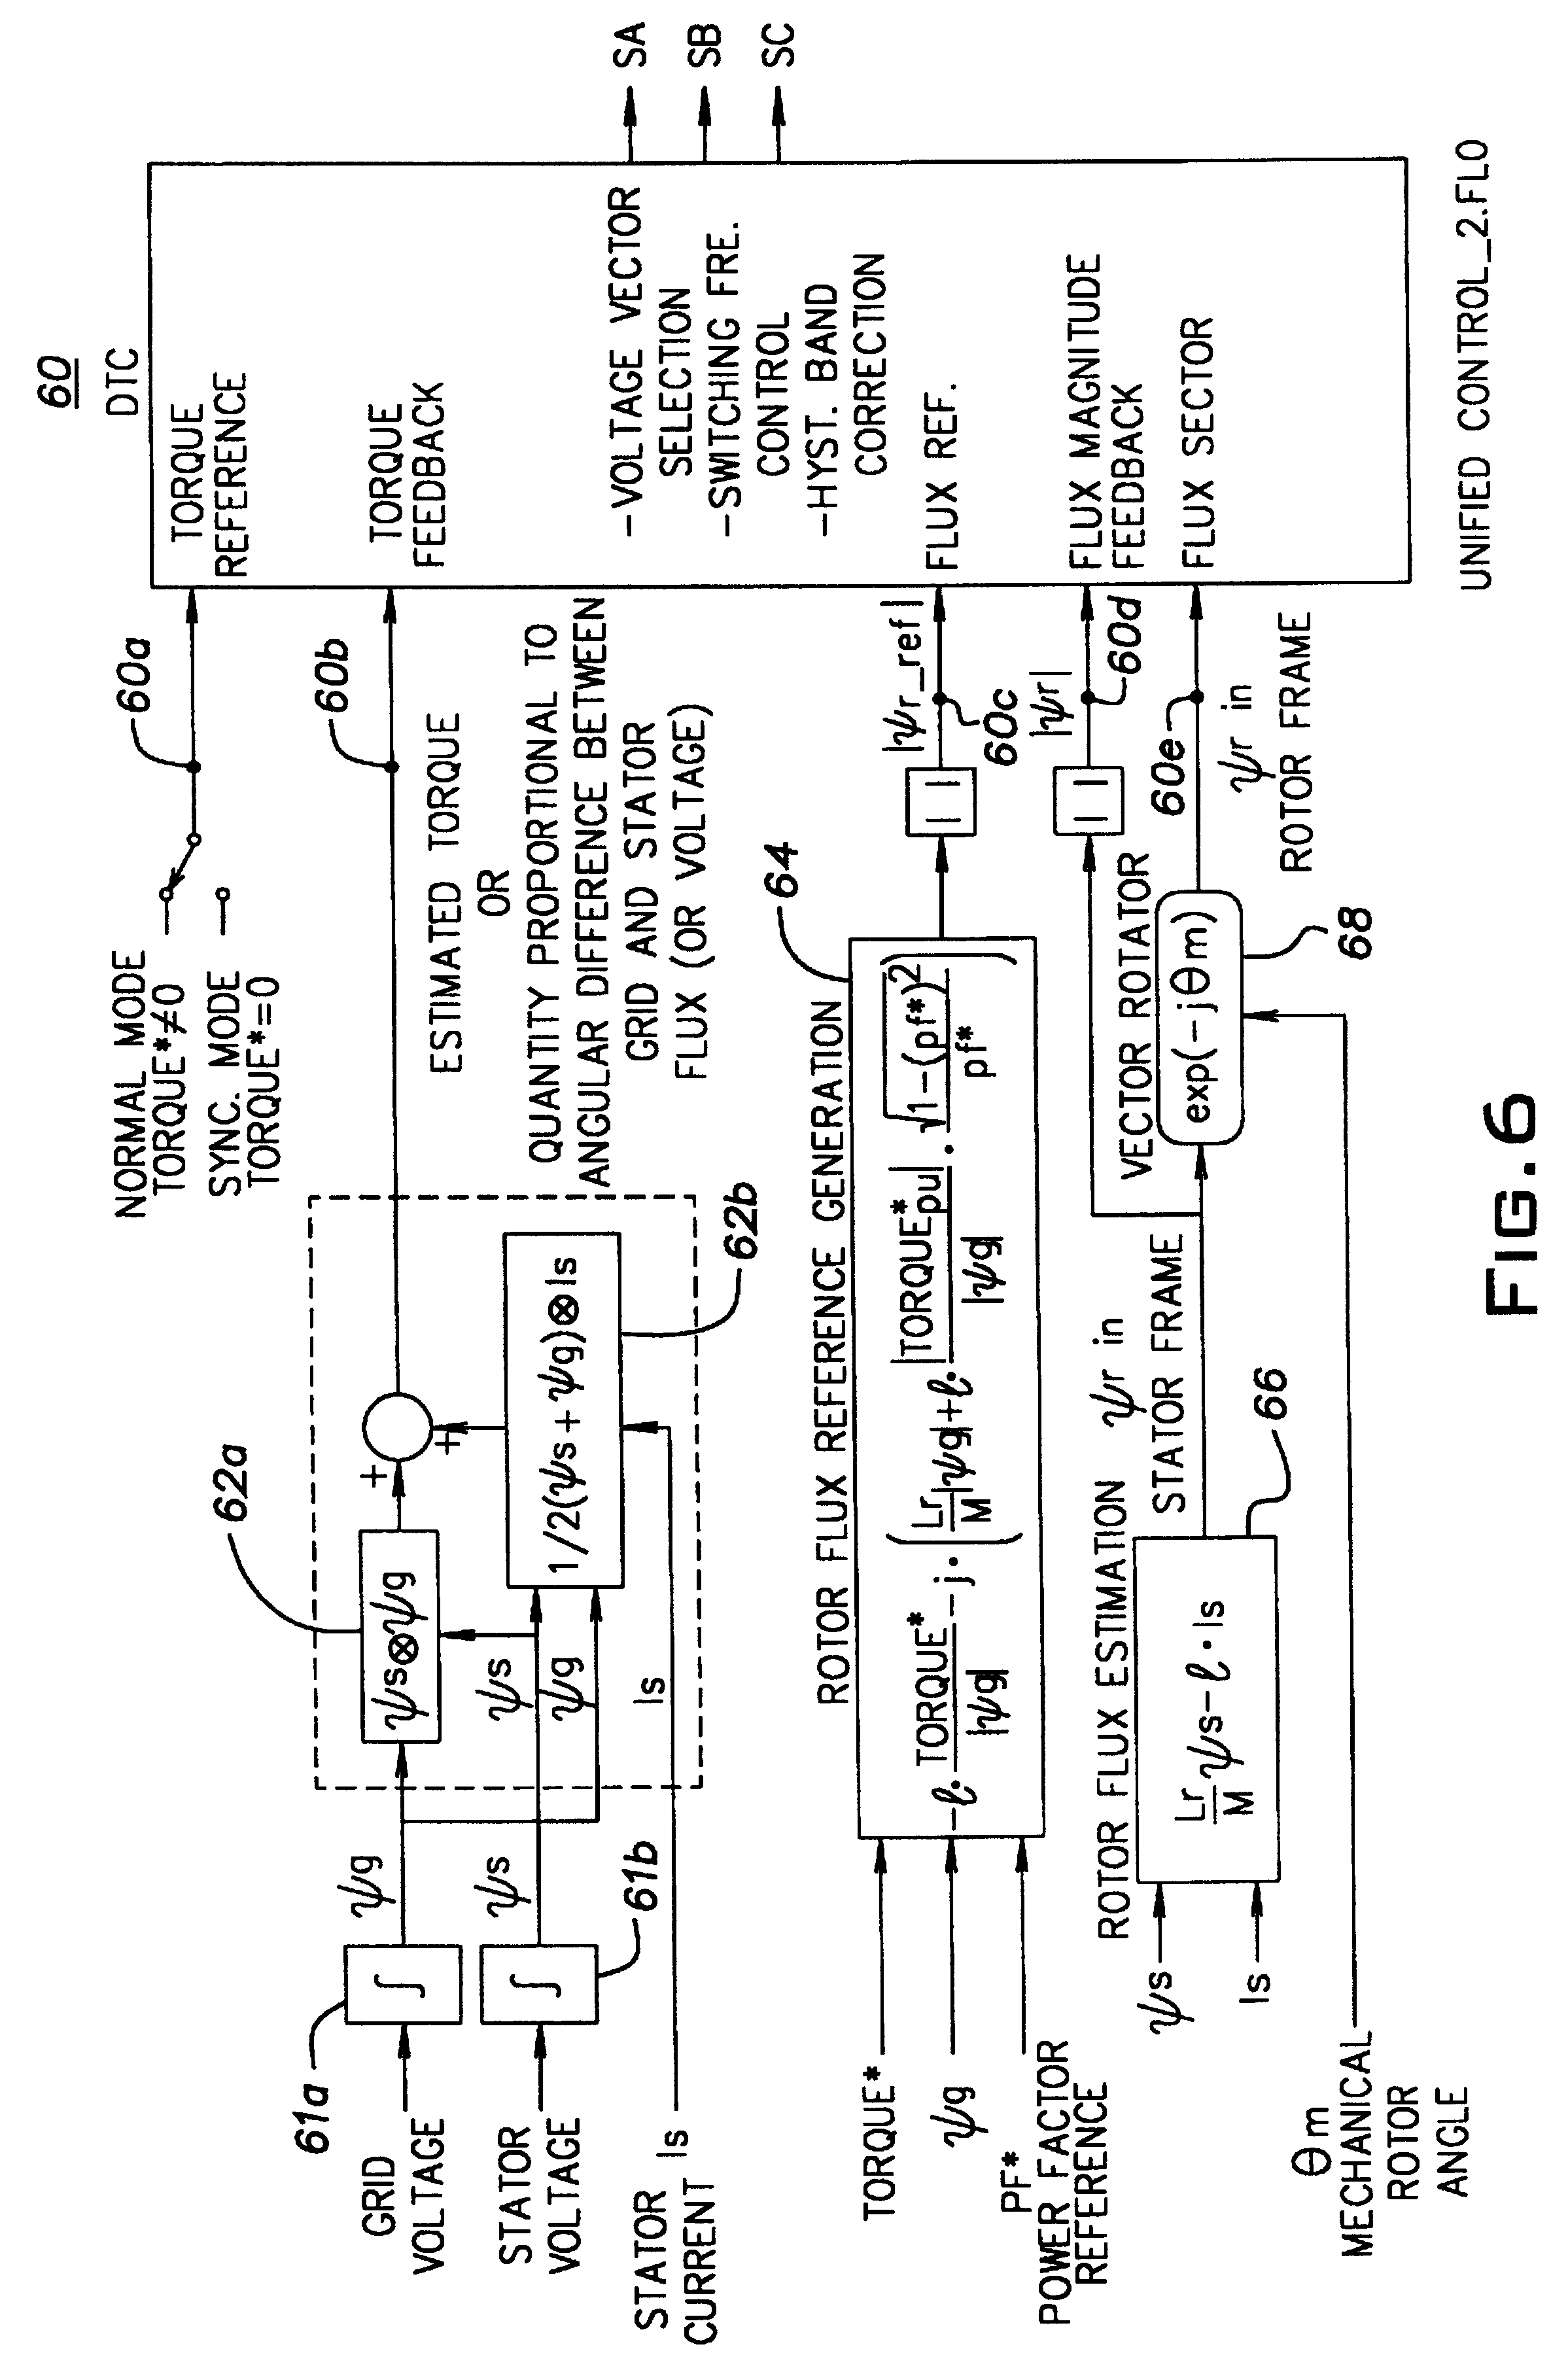 Rotor Resistance Calculation For Slip Ring Motor